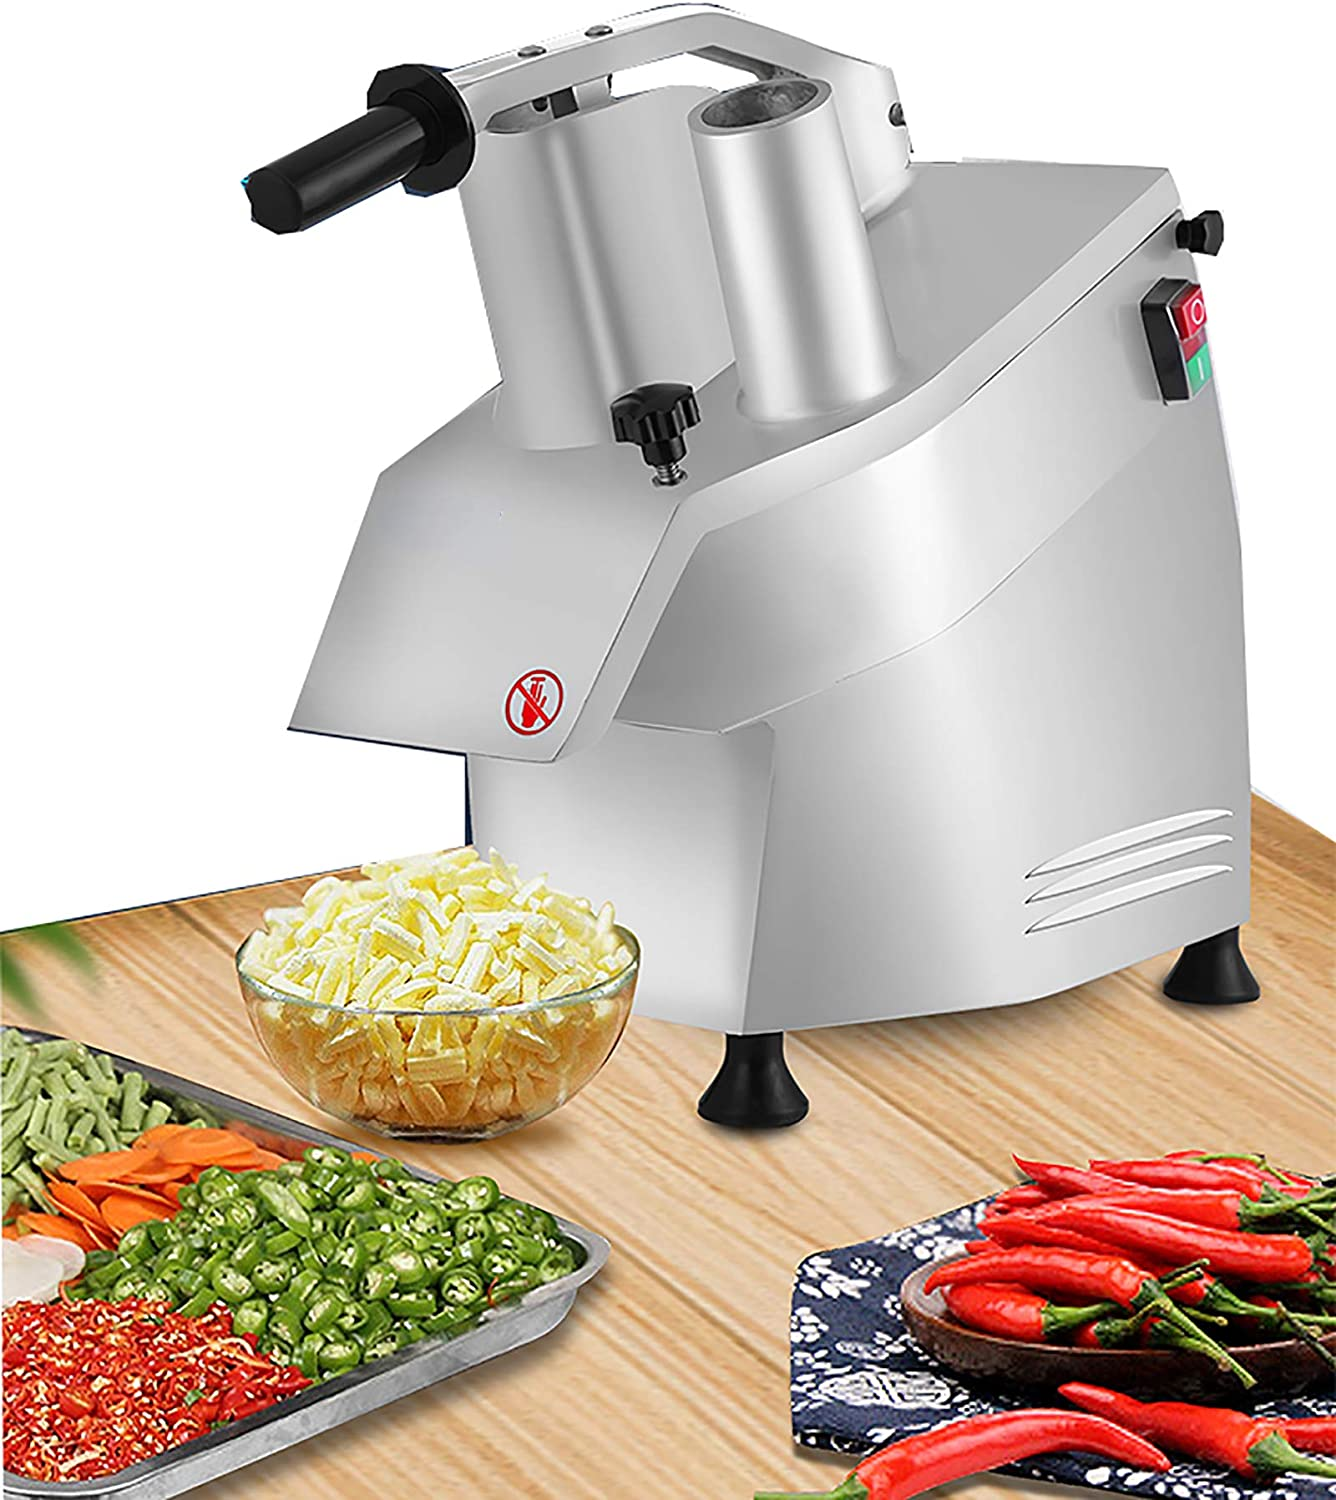 NEWTRY 550W Commercial Electric Vegetable Processor Cutter Grater Machine Food Shredder/Slicer Stainless Steel for Fruit Potato Ginger Garlic Cheese 50kg/h